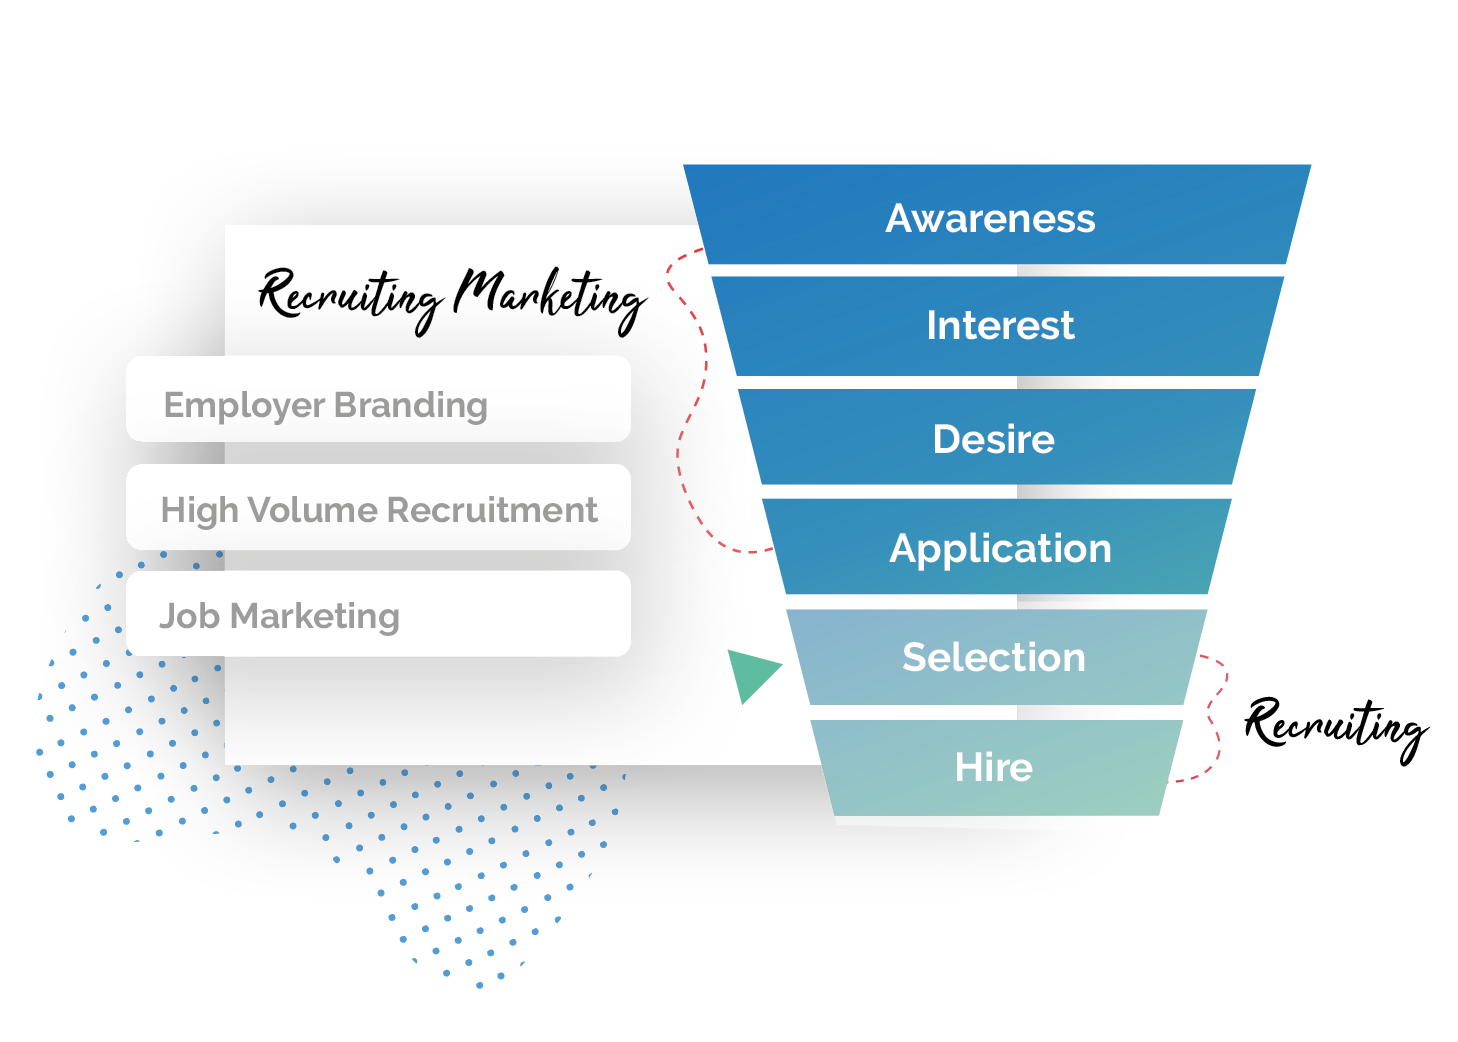 AIDA Funnel Recruitment Marketing Technology